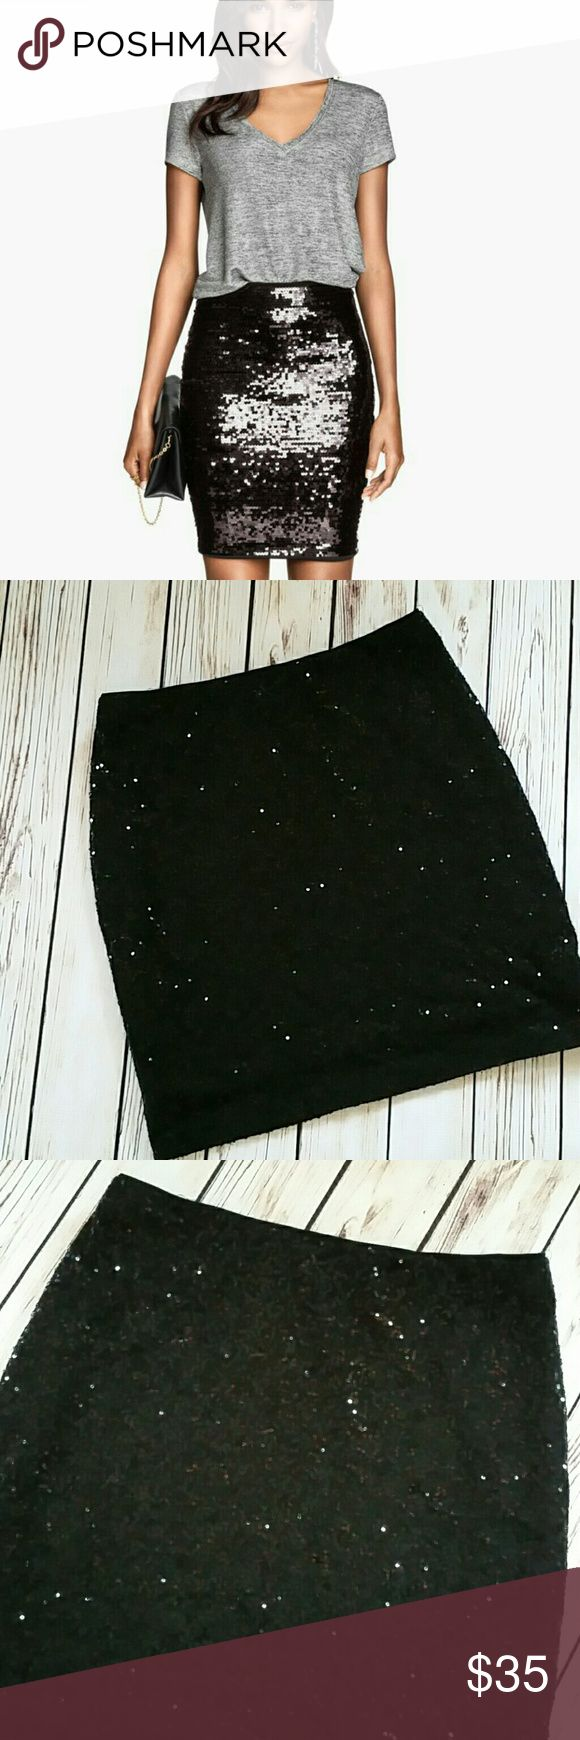 """Cache black sequin skirt small Gorgeous cache black sequin skirt. Small. Features elastic waist band. Measured flat. EUC. No visible flaws.   Waist 15"""" Length 19"""" Cache Skirts Pencil"""